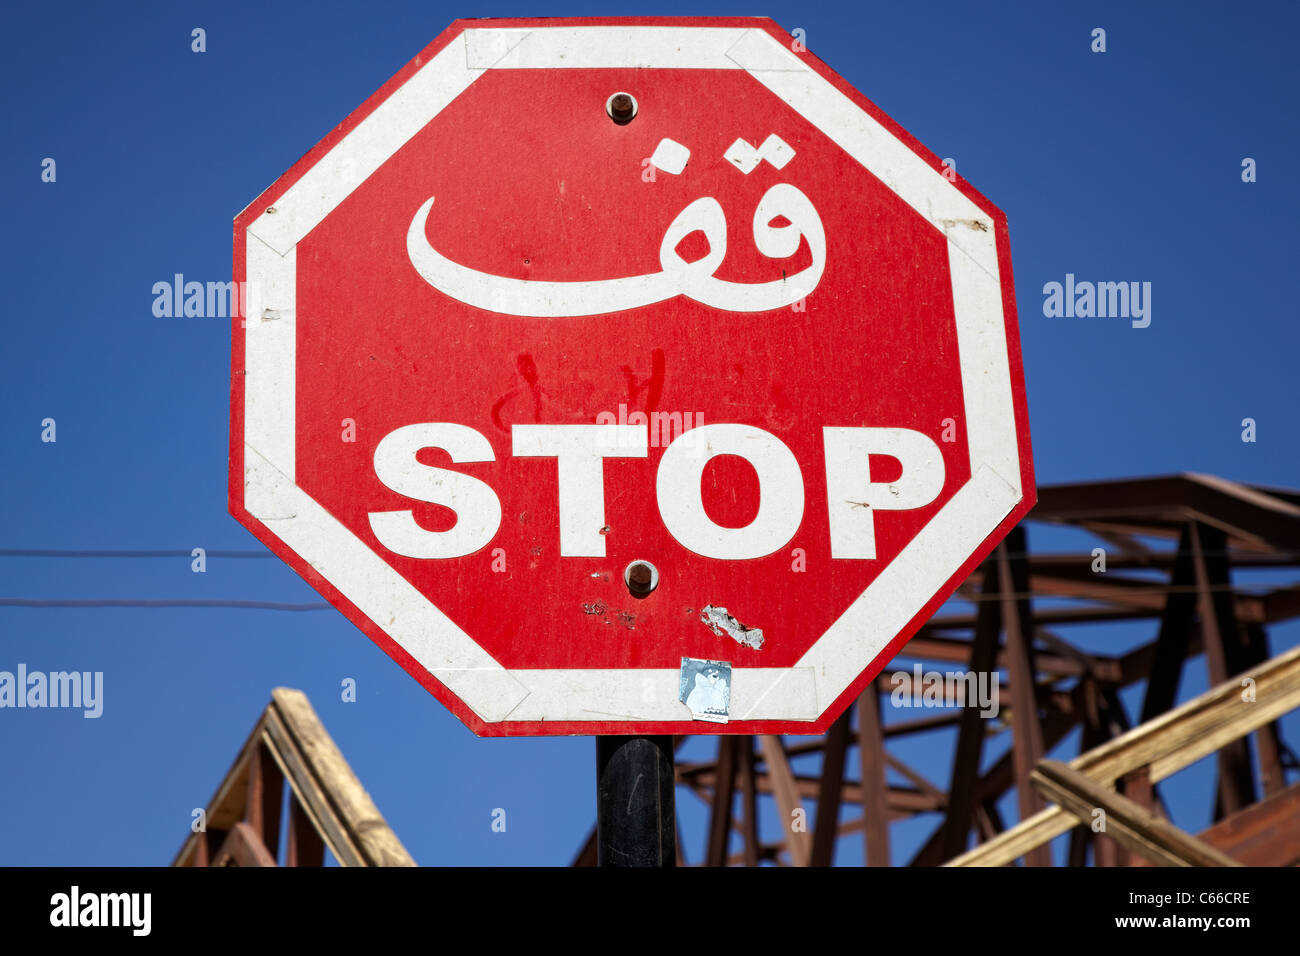 Stop sign in Arabic, Khartoum, Northern Sudan, Africa - Stock Image